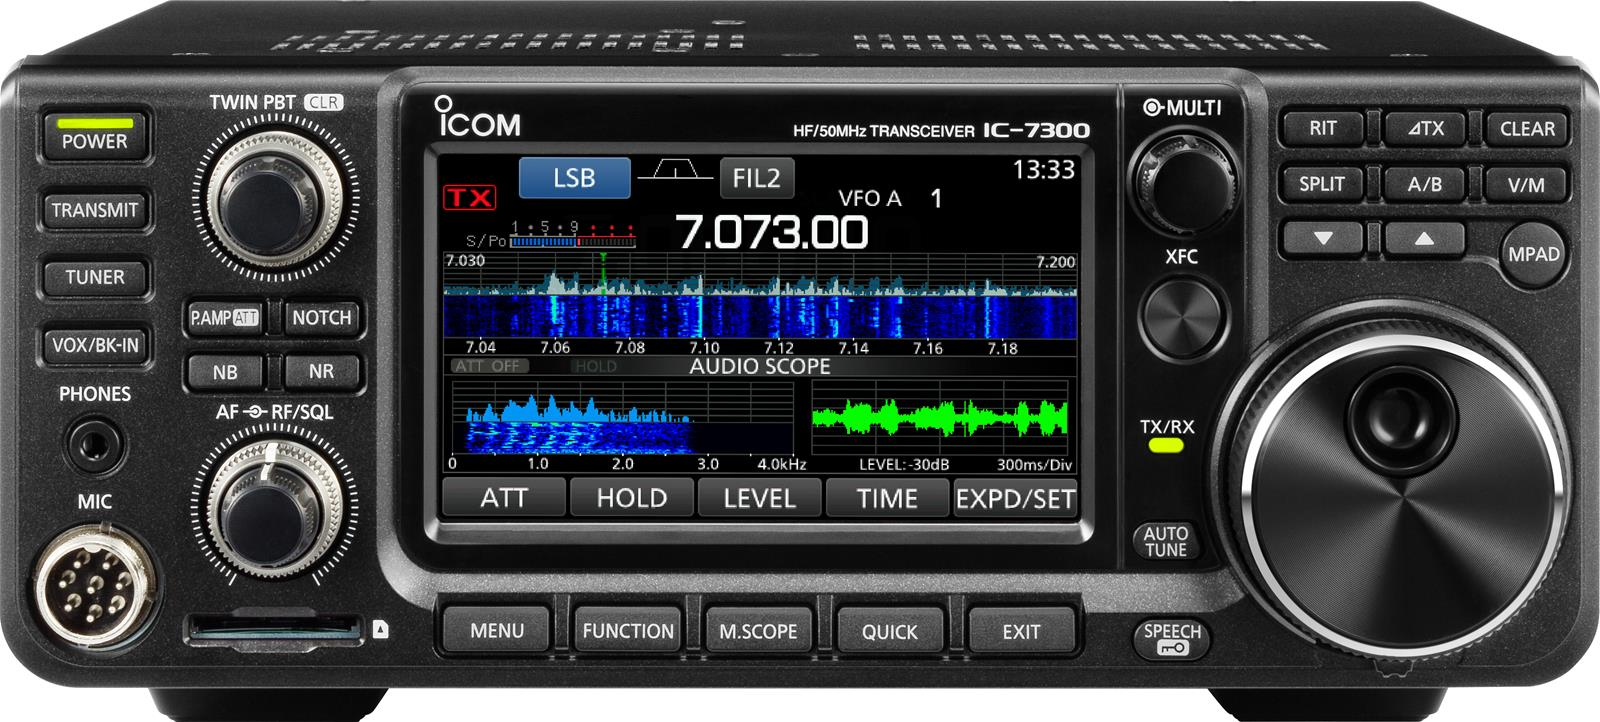 ICOM IC-7300 TRANSCEIVER WINDOWS 7 X64 DRIVER